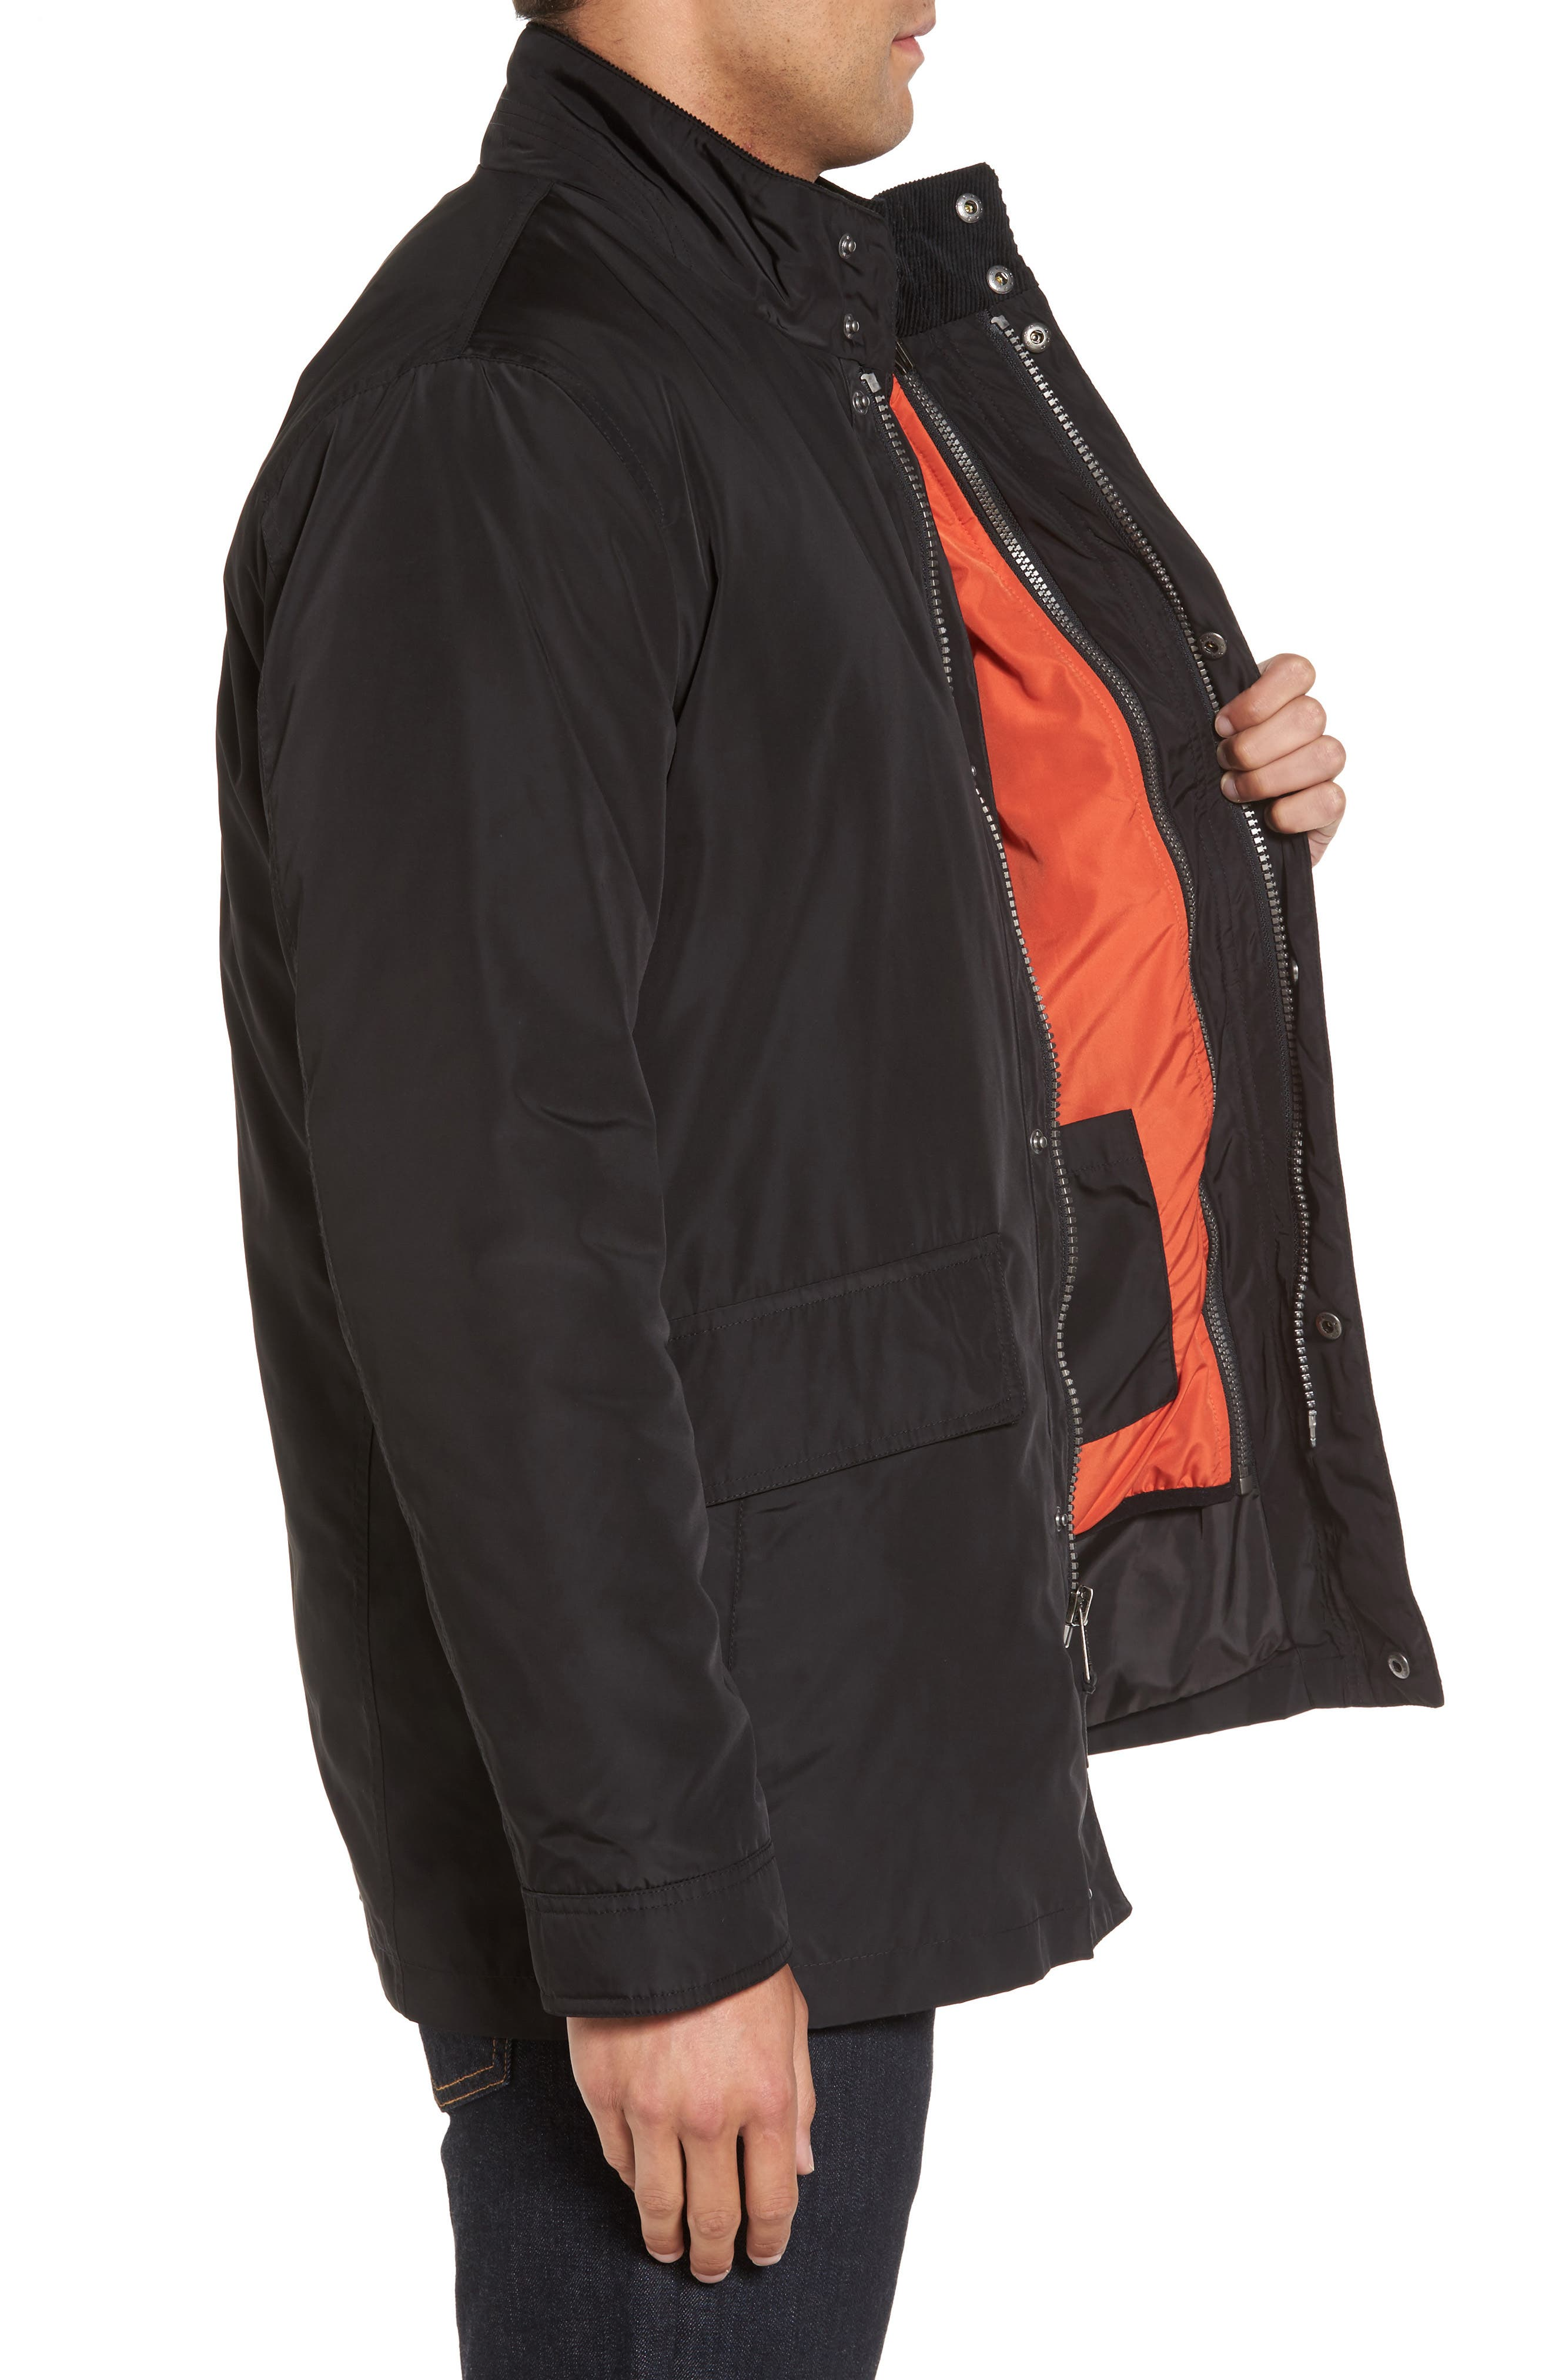 Coat with Removable Bomber Jacket,                             Alternate thumbnail 3, color,                             001